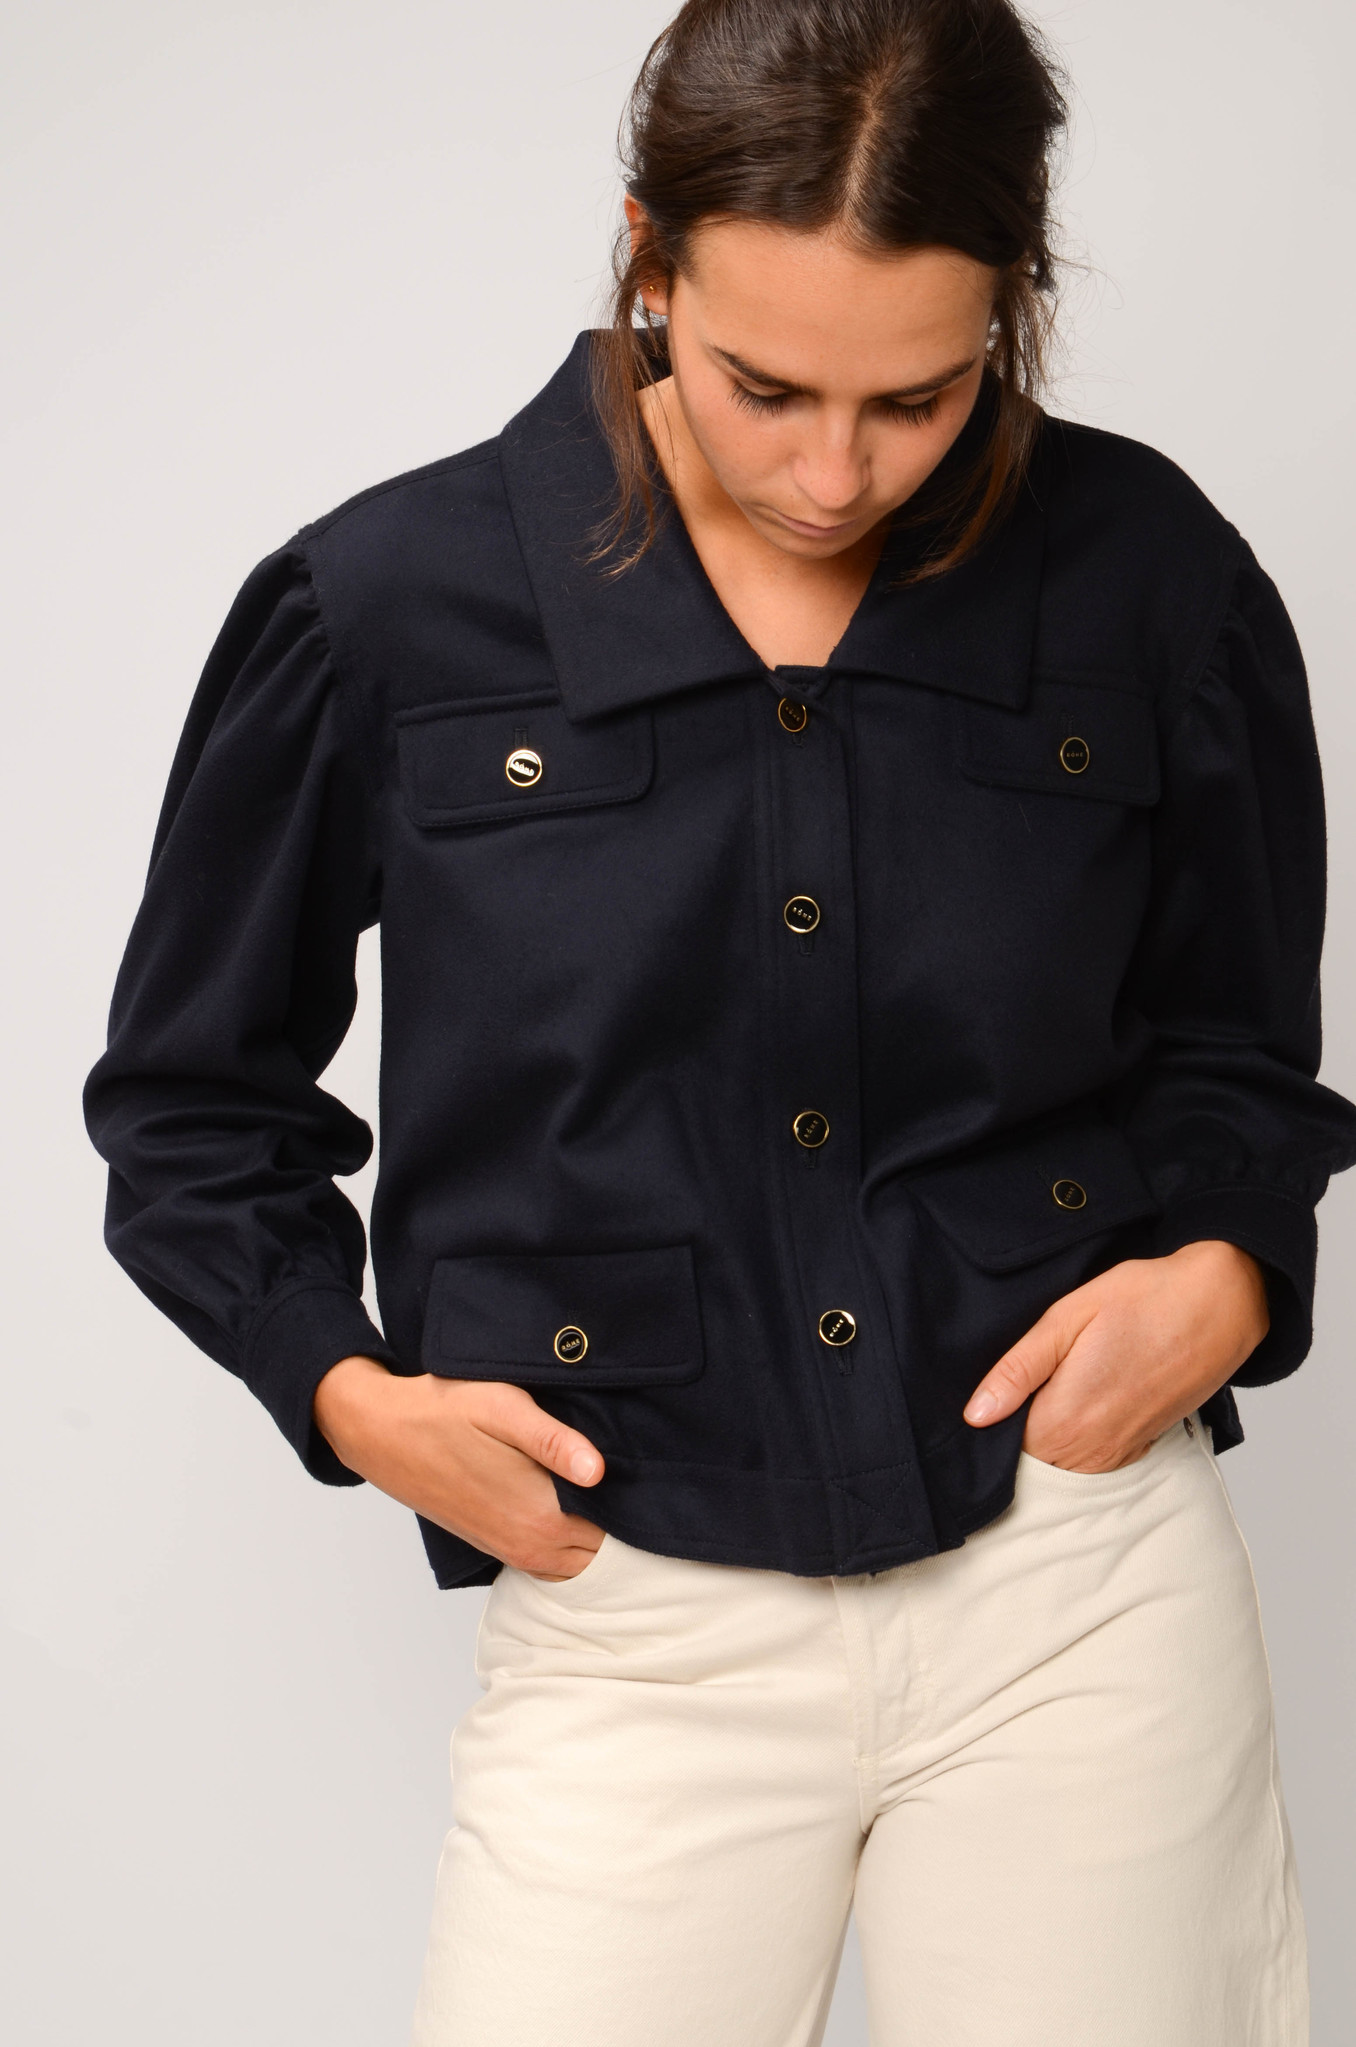 CATHERIN BLOUSE IN NAVY-5